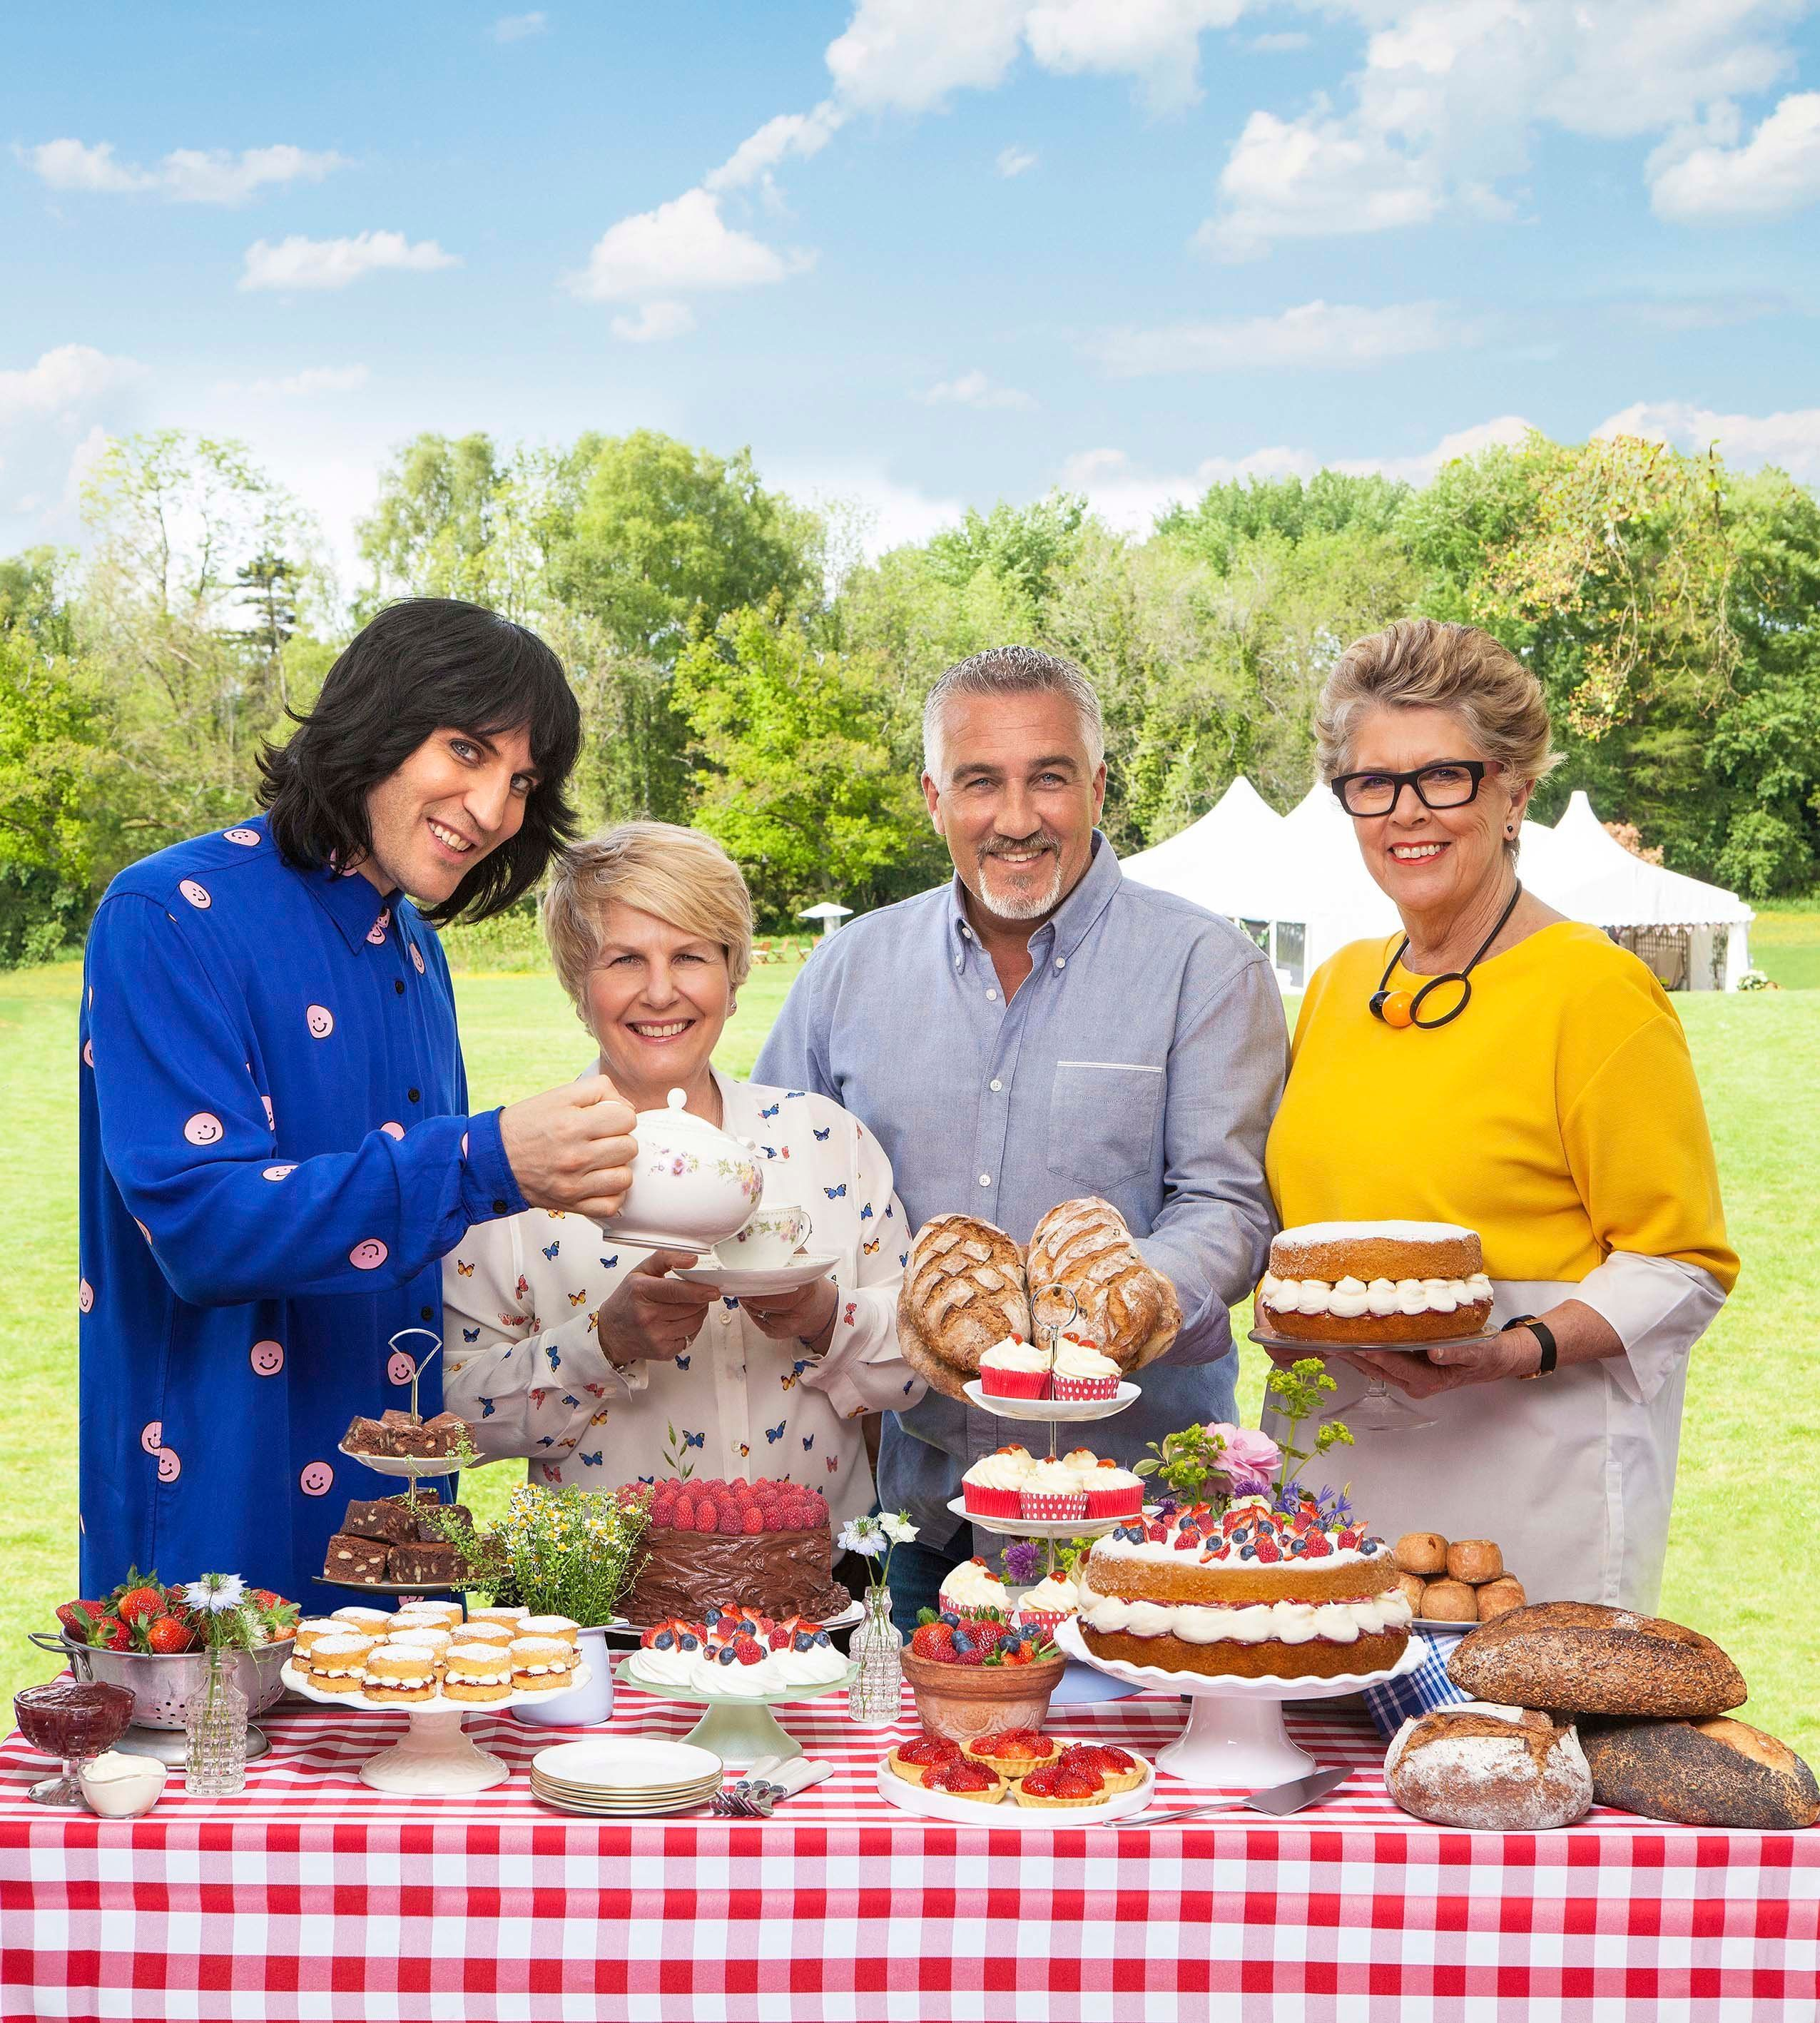 Noel Fielding And Sandi Toksvig Explain Why Their Double Act Is More Than A Match For Mel And Sue On 'Bake Off'